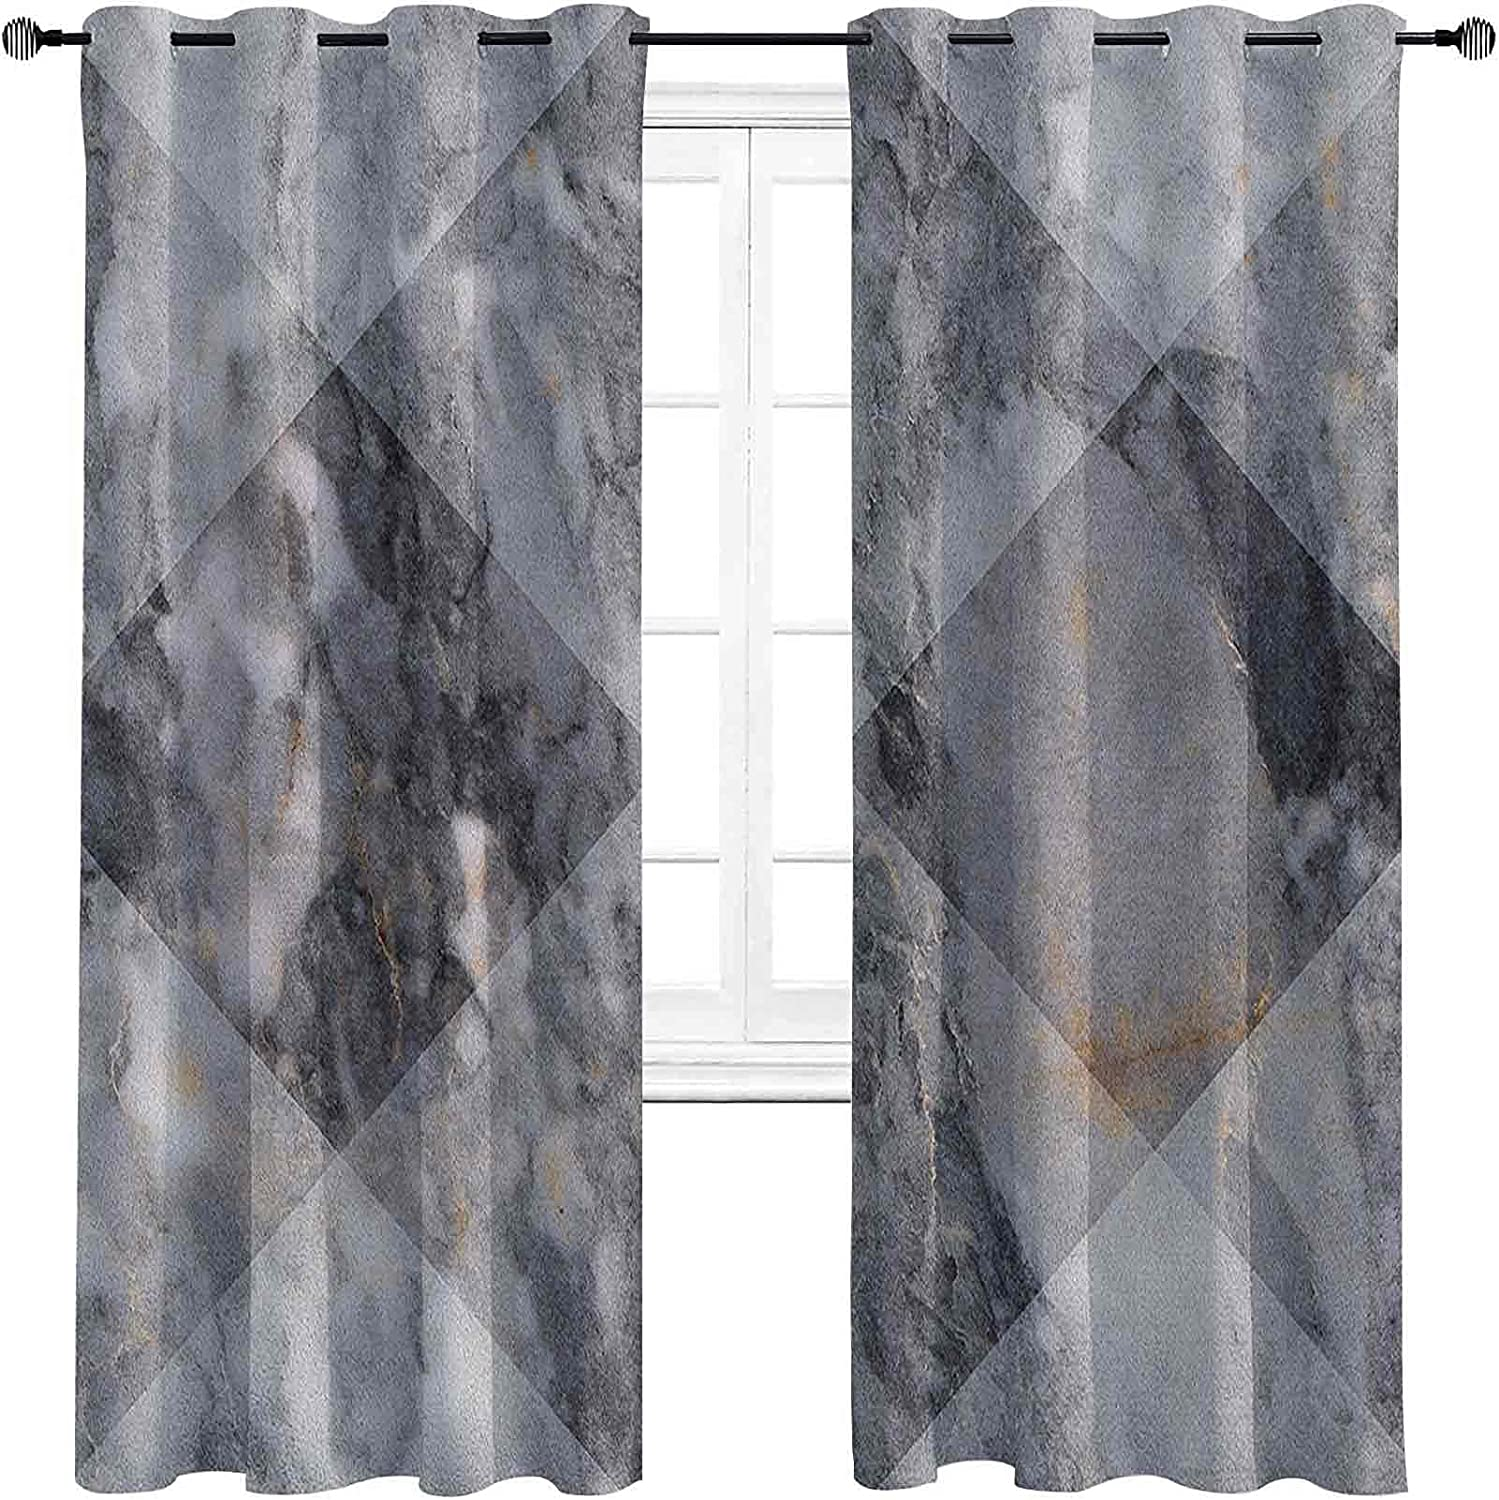 Marble Blackout Curtains security Direct store with Diamond Geometric Grommets darken